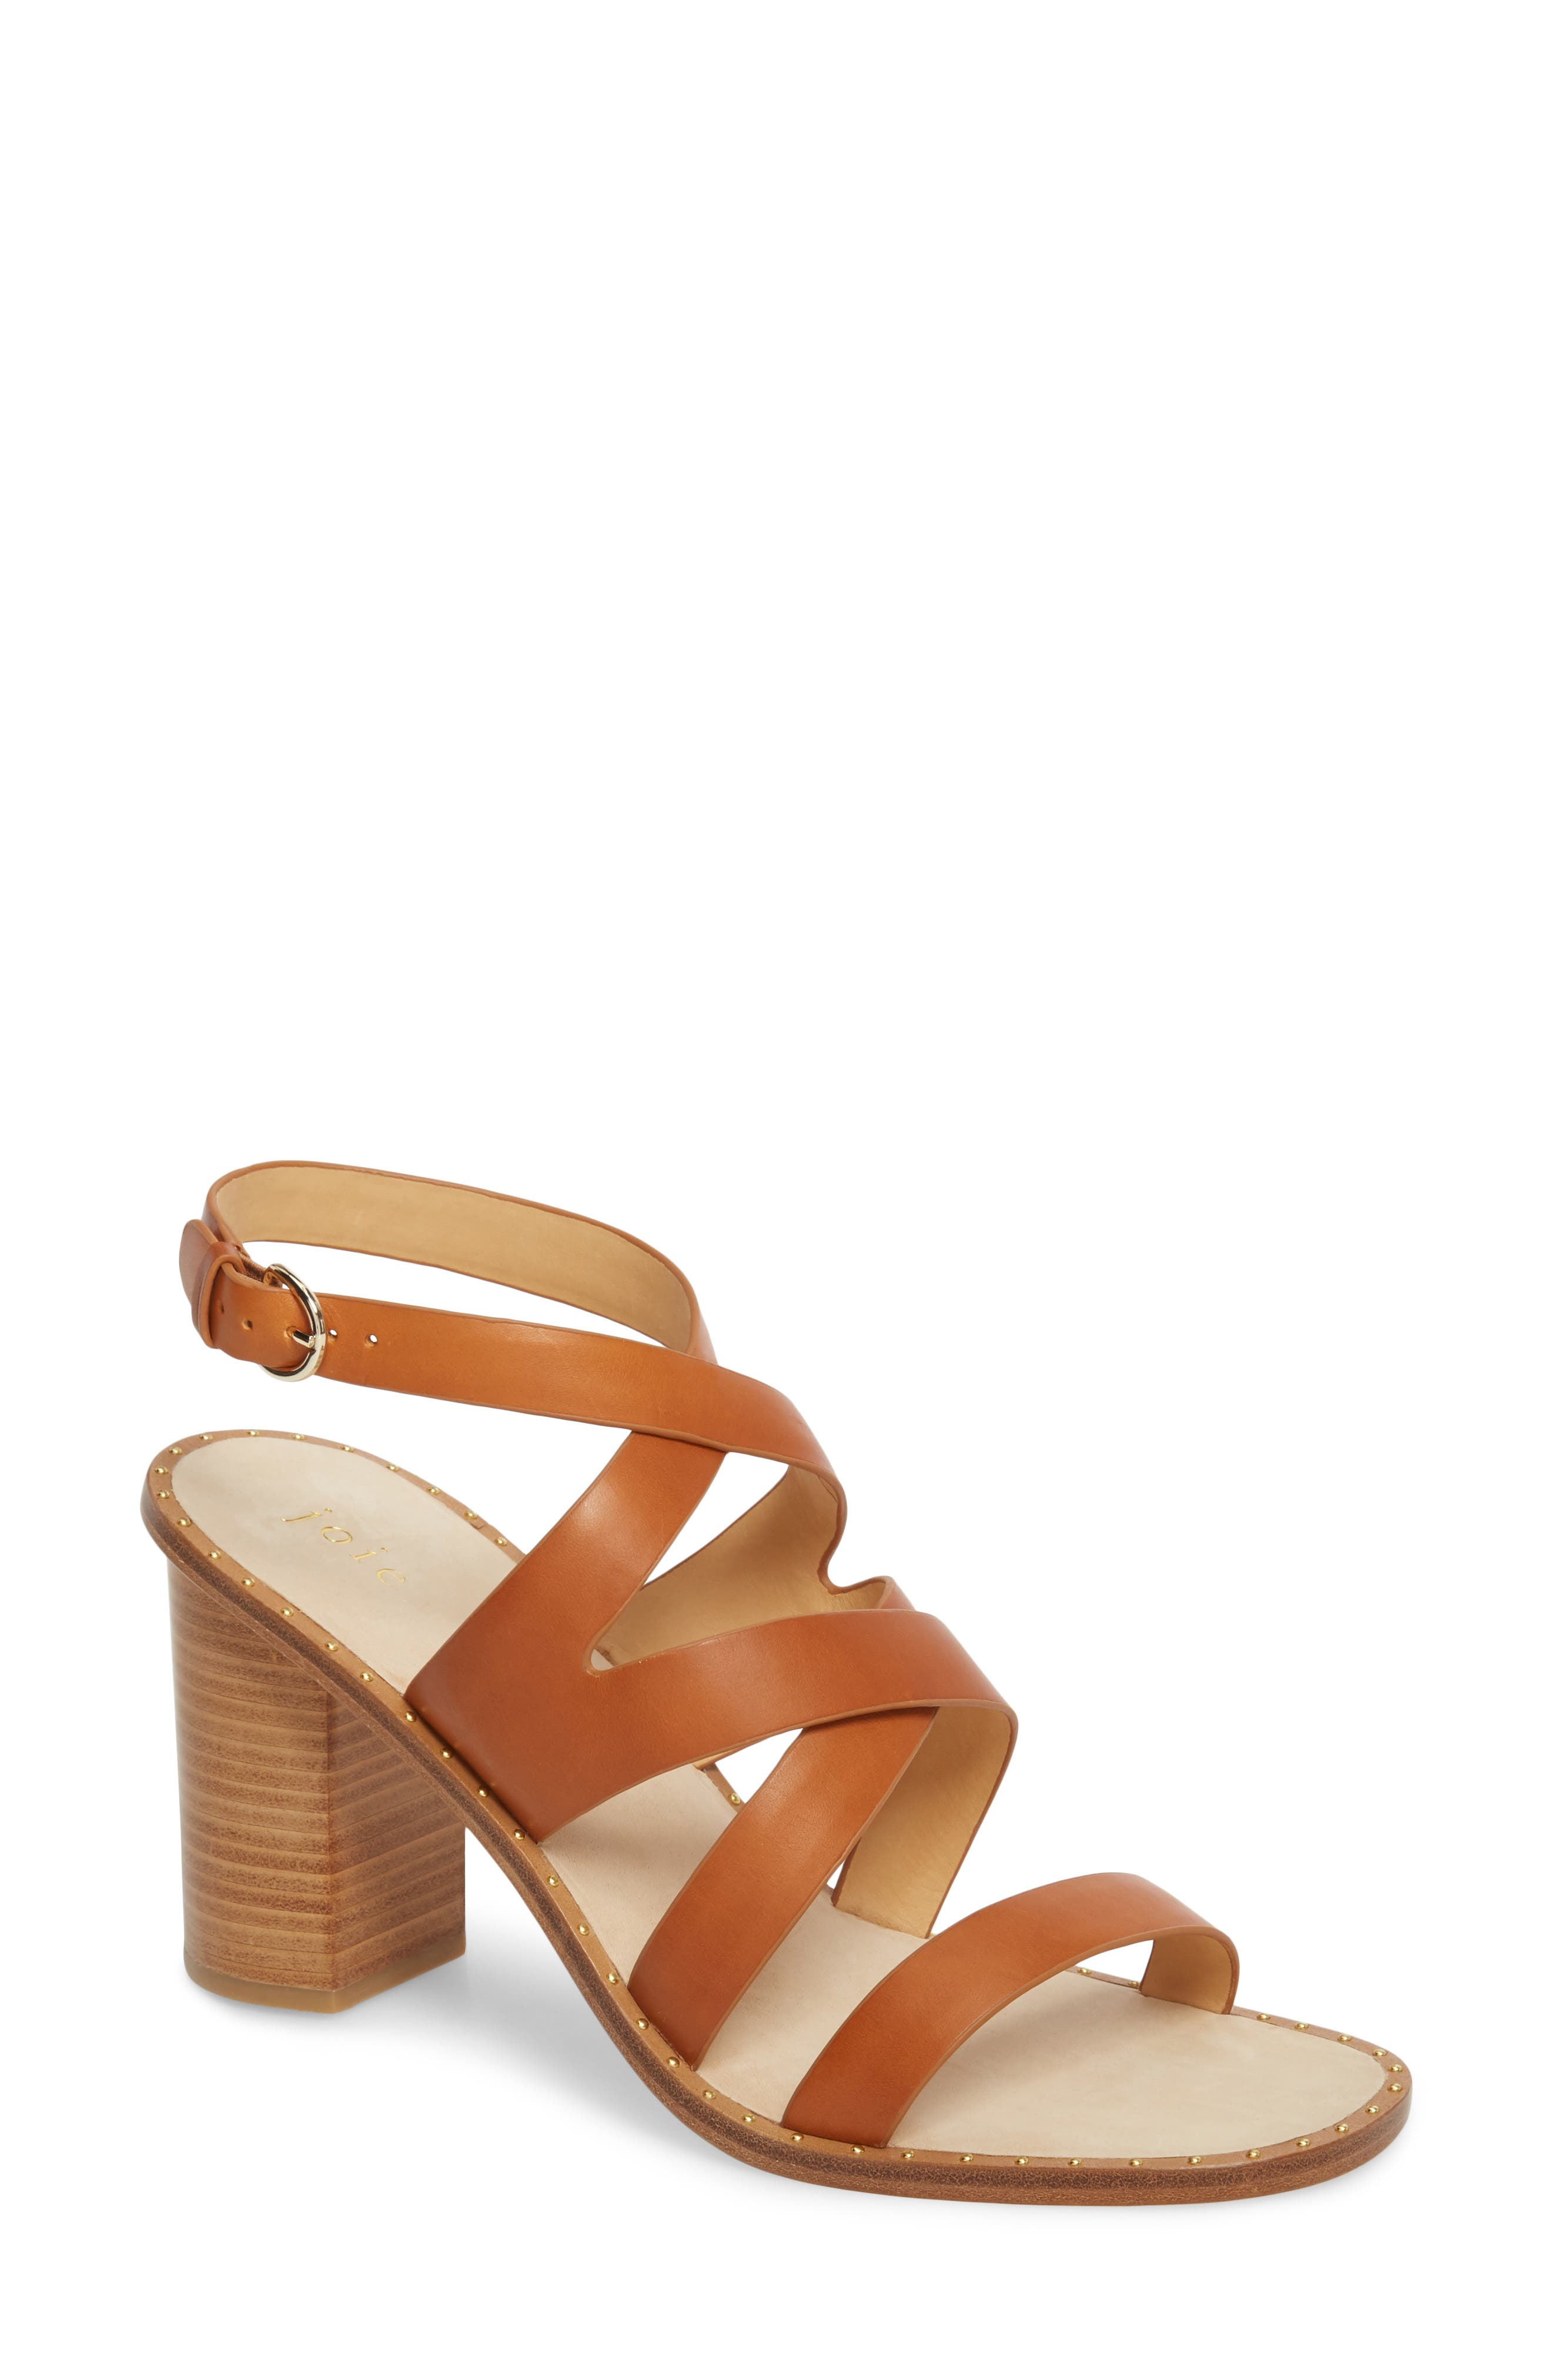 Onfer Studded Strappy Sandal,                         Main,                         color, Tan